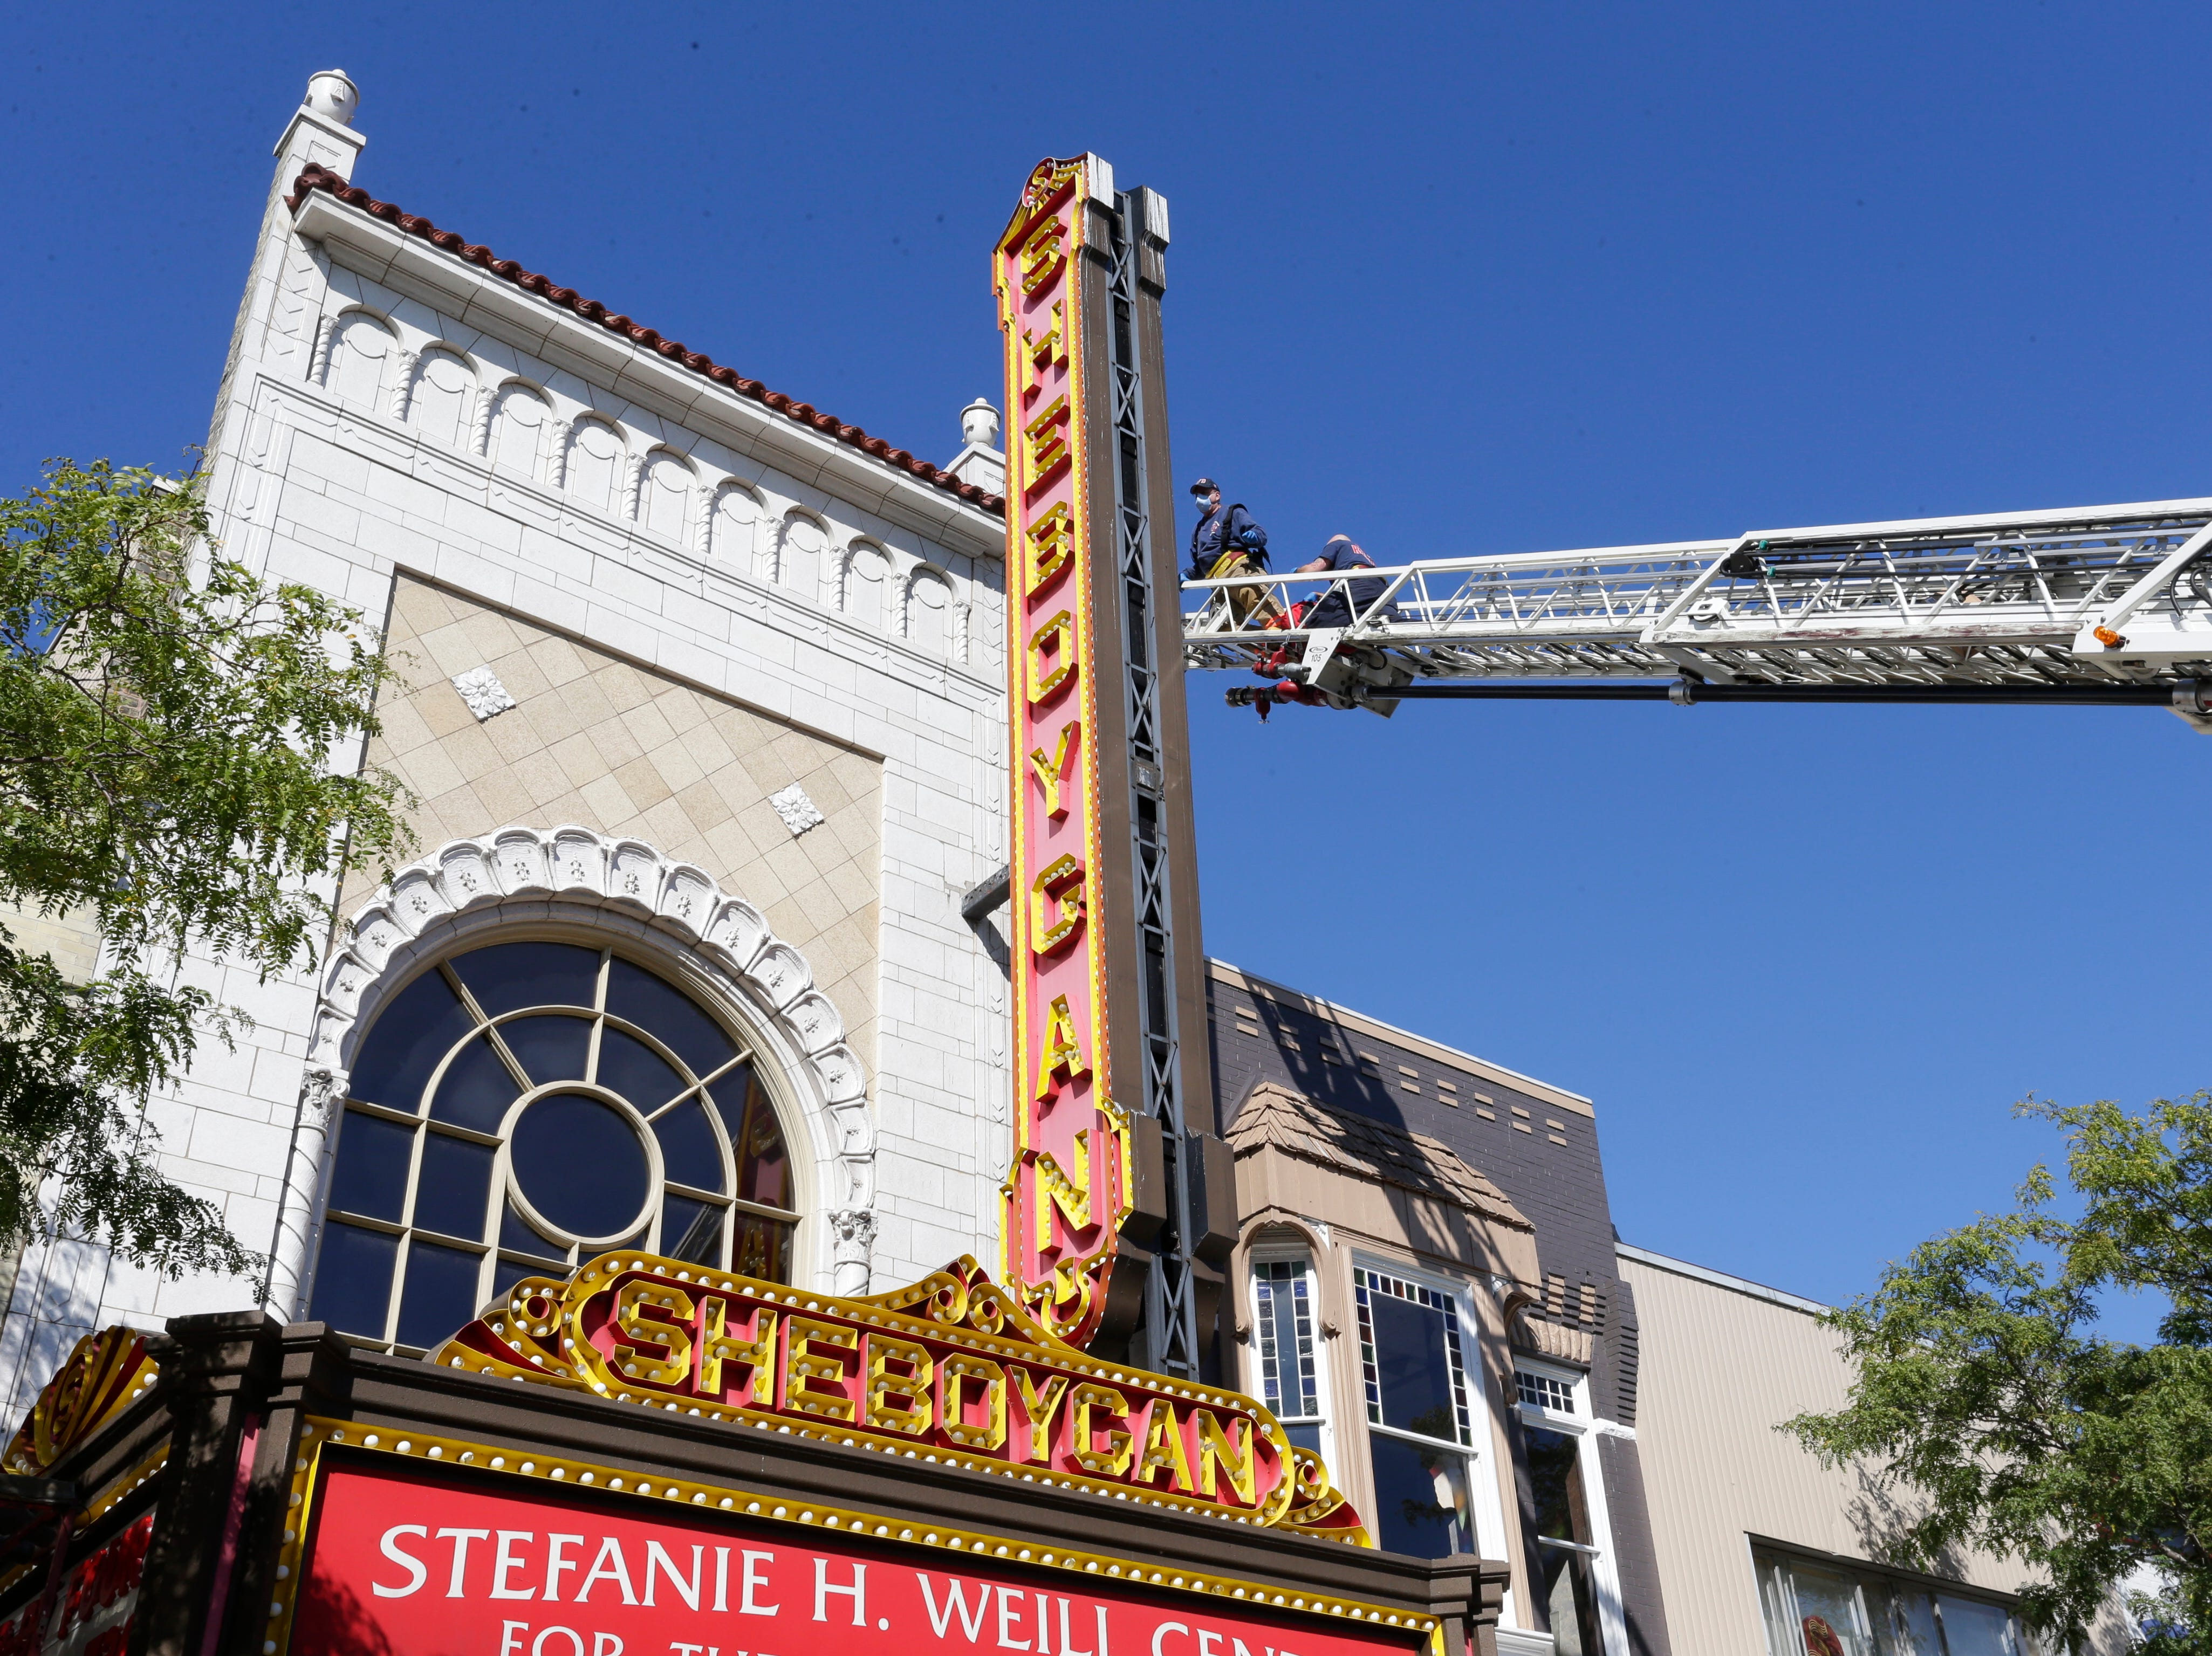 The boom of the City of Sheboygan Fire Department truck reaches out to the marquee of the Stefanie H. Weill Center for the Performing Arts, Sunday, September 23, 2018, in Sheboygan, Wis.